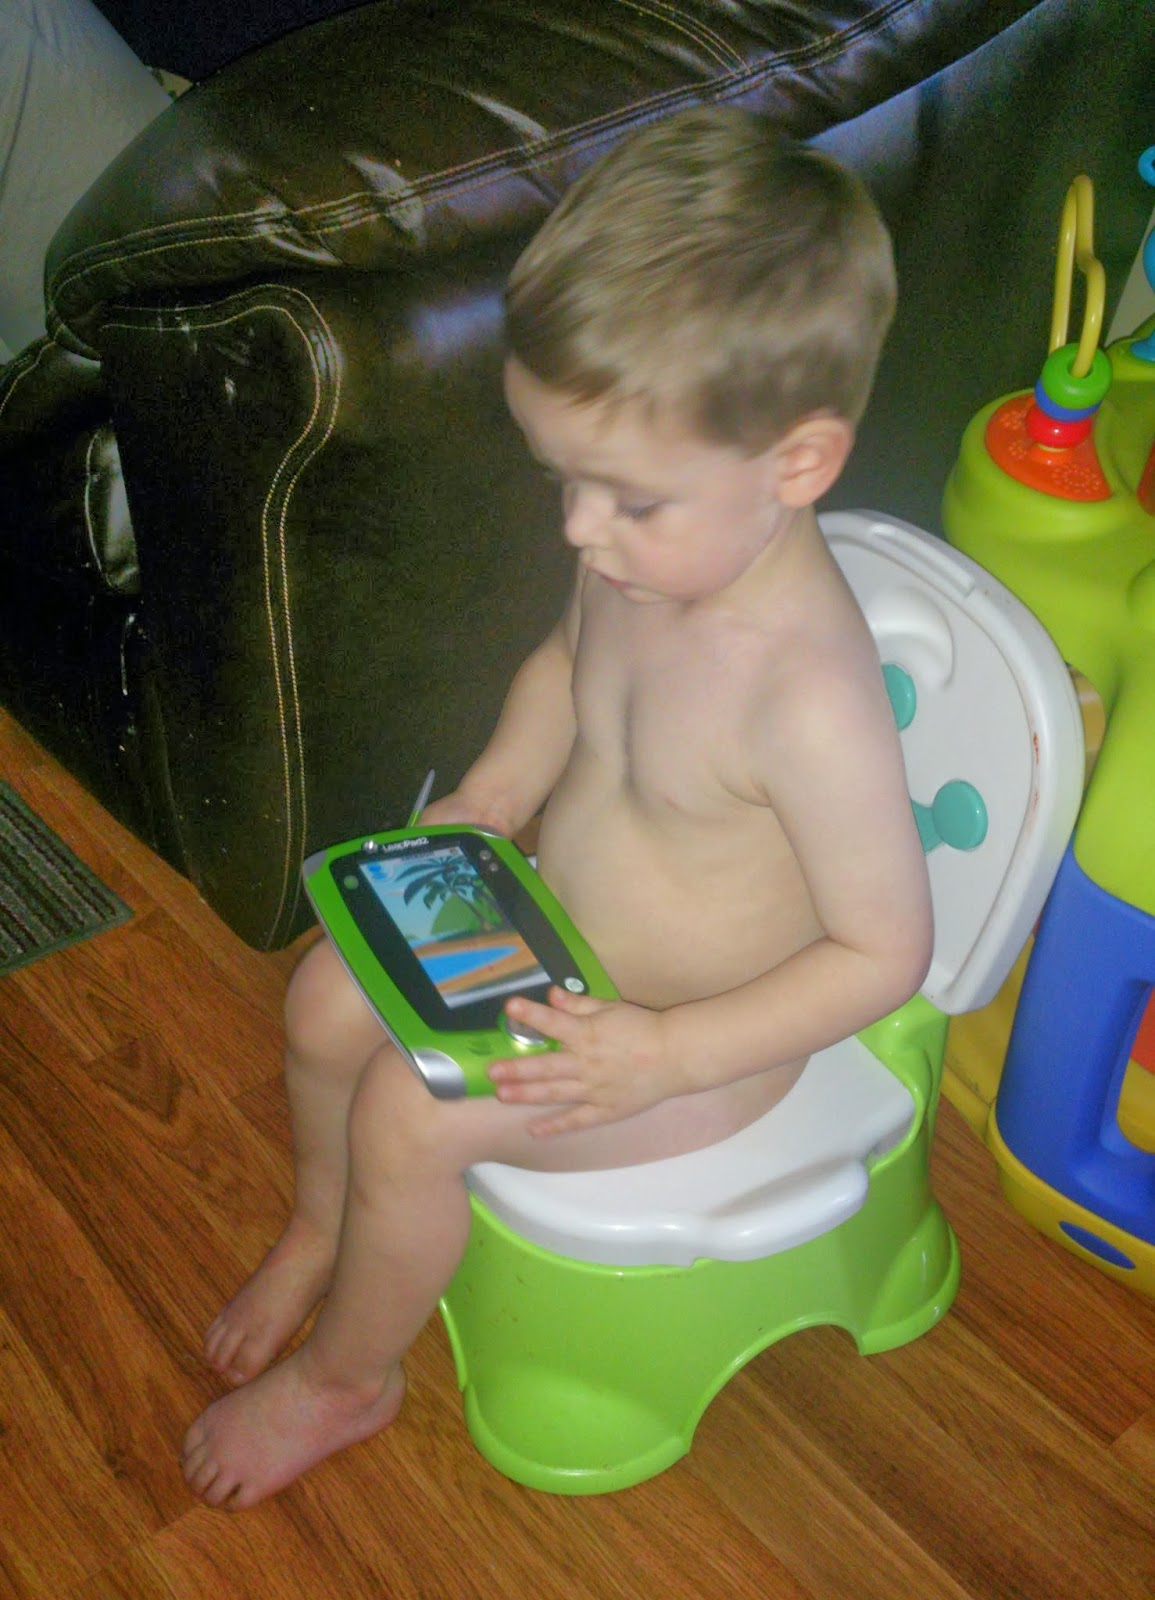 Boy potty training naked